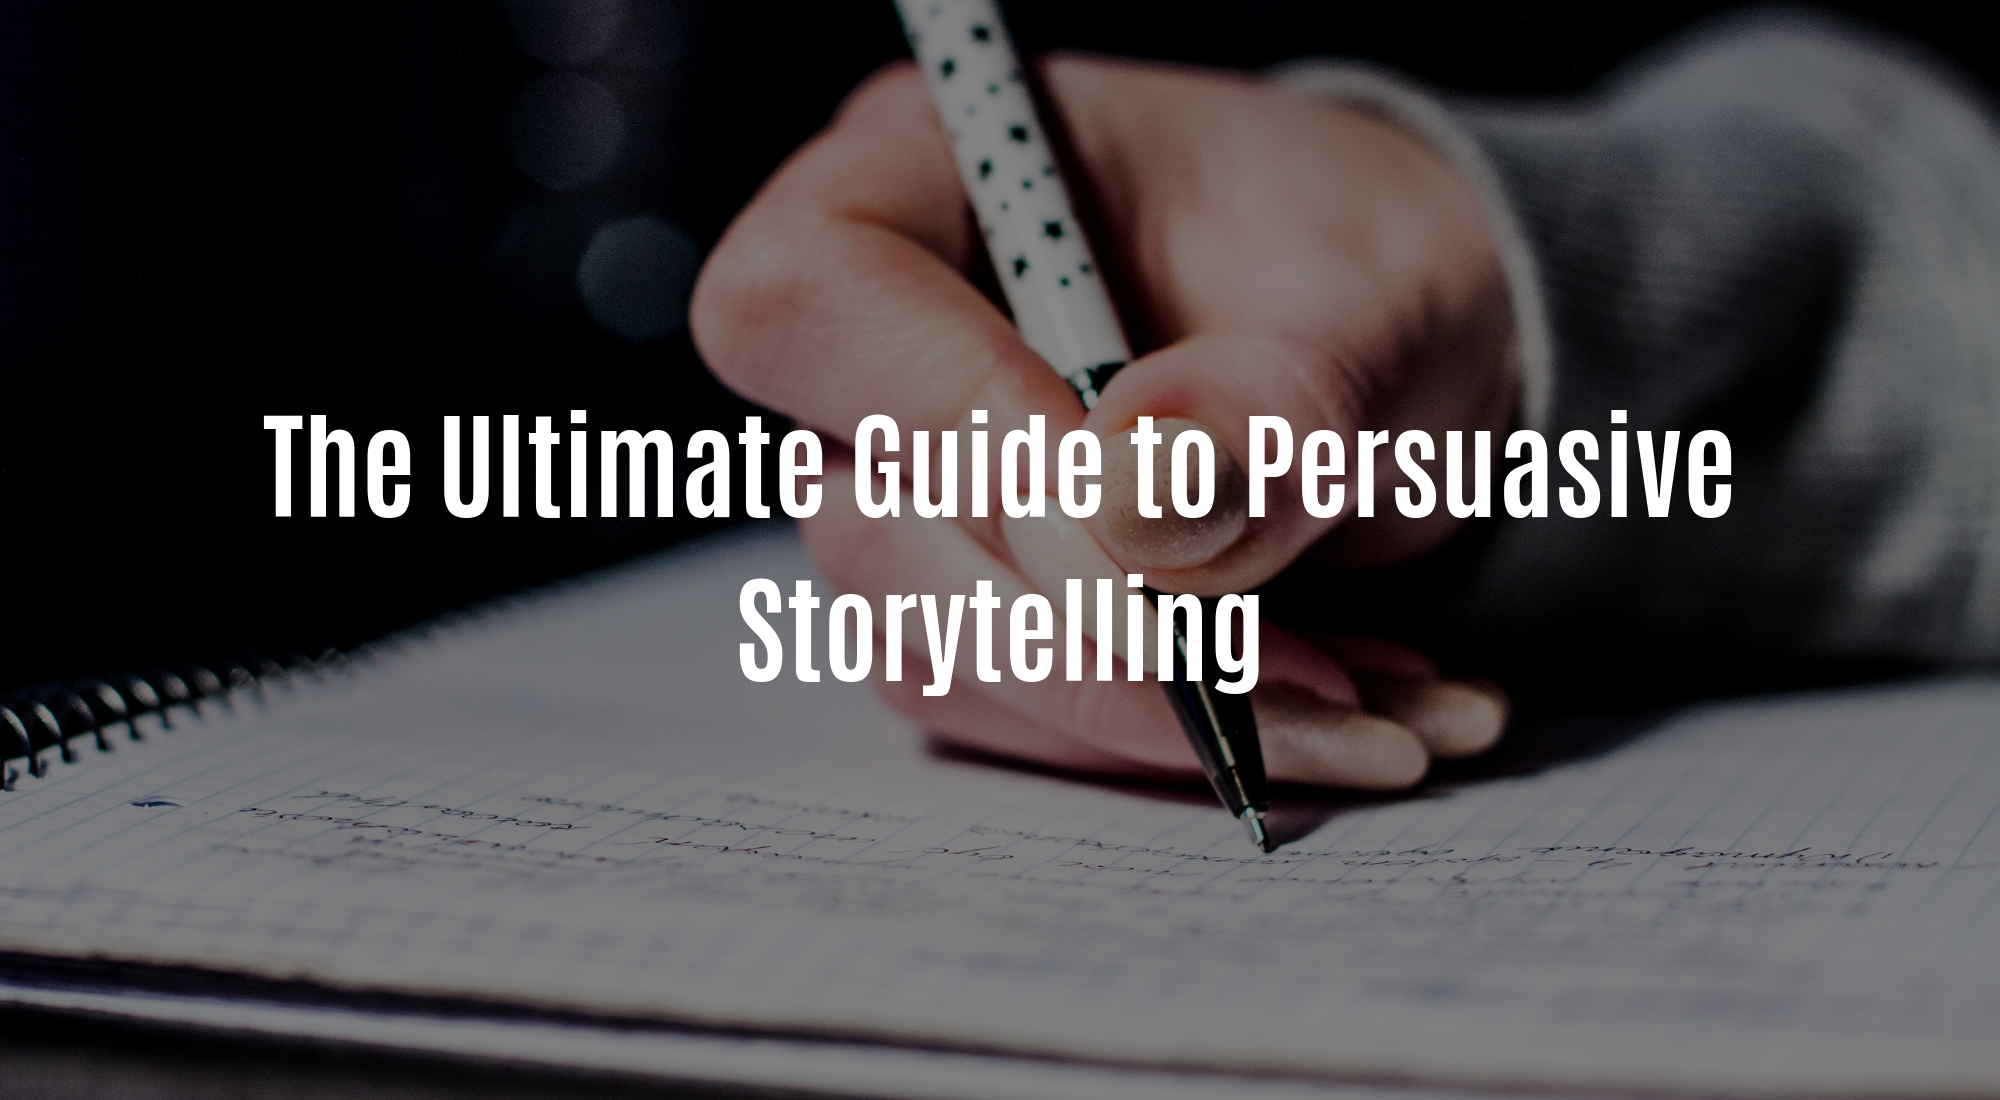 The Ultimate Guide to Persuasive Storytelling.jpg